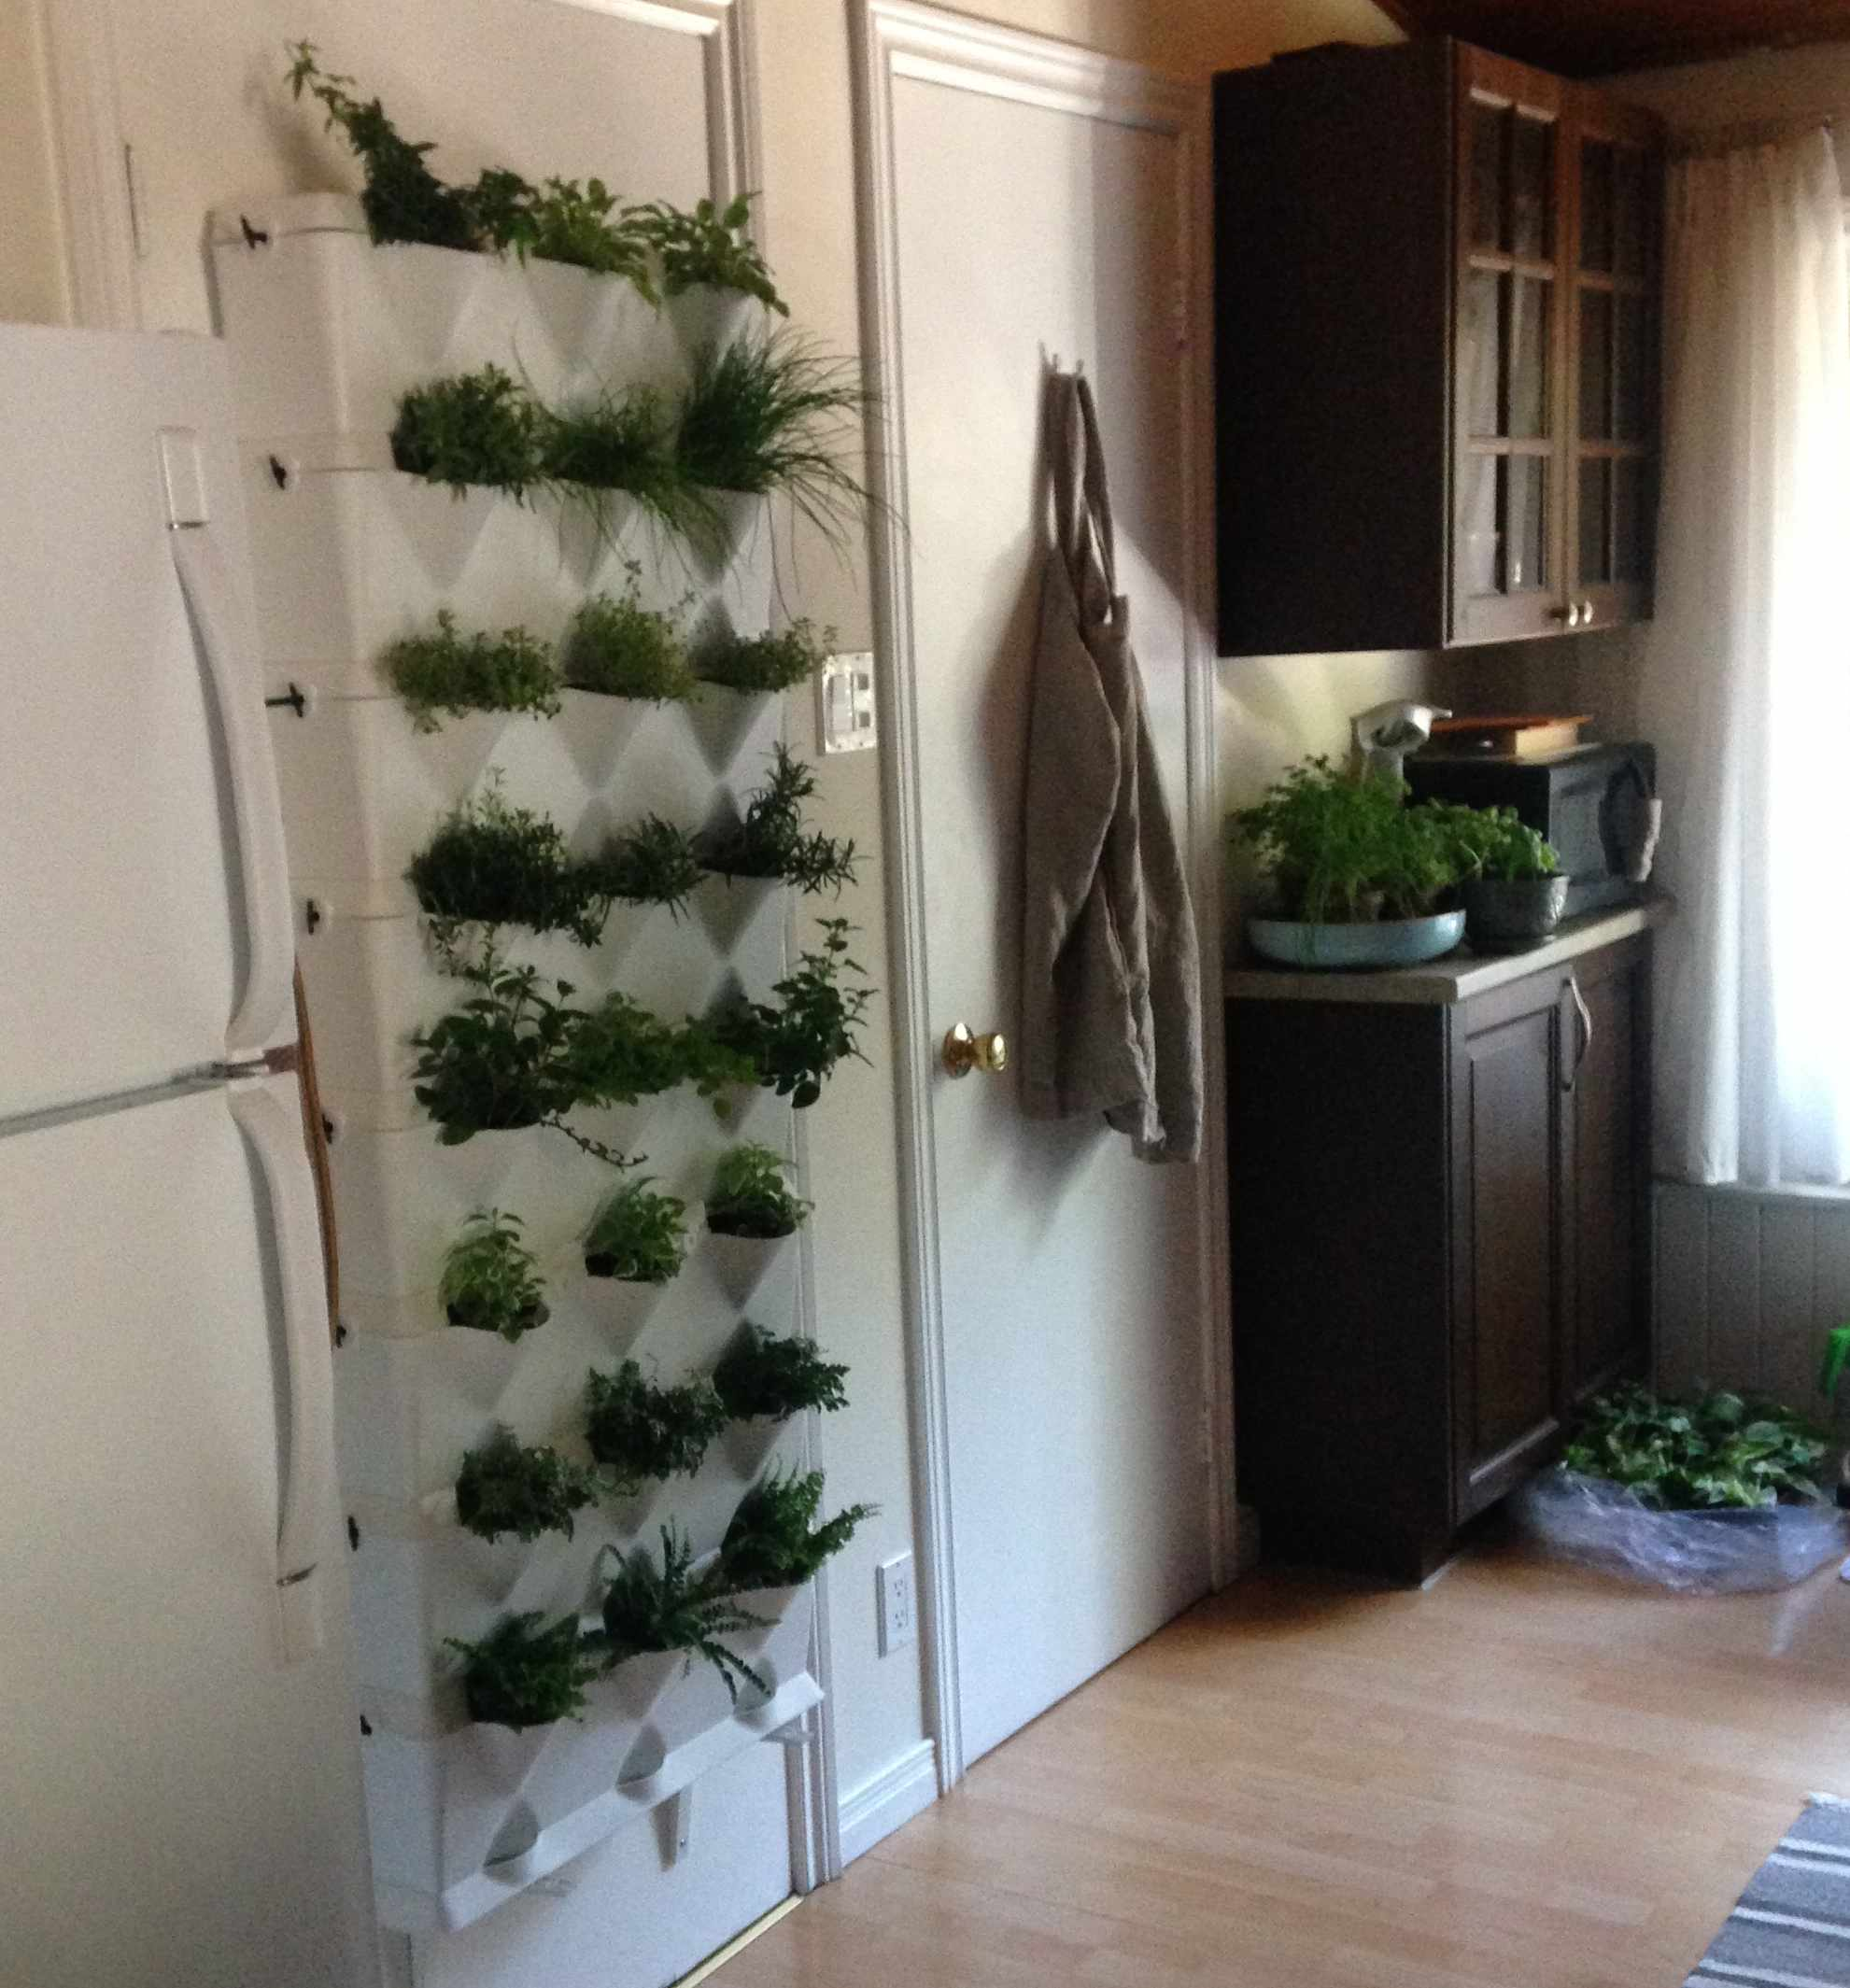 Minigarden in action kim m s vertical garden minigarden us - Vertical gardens miniature oases ...